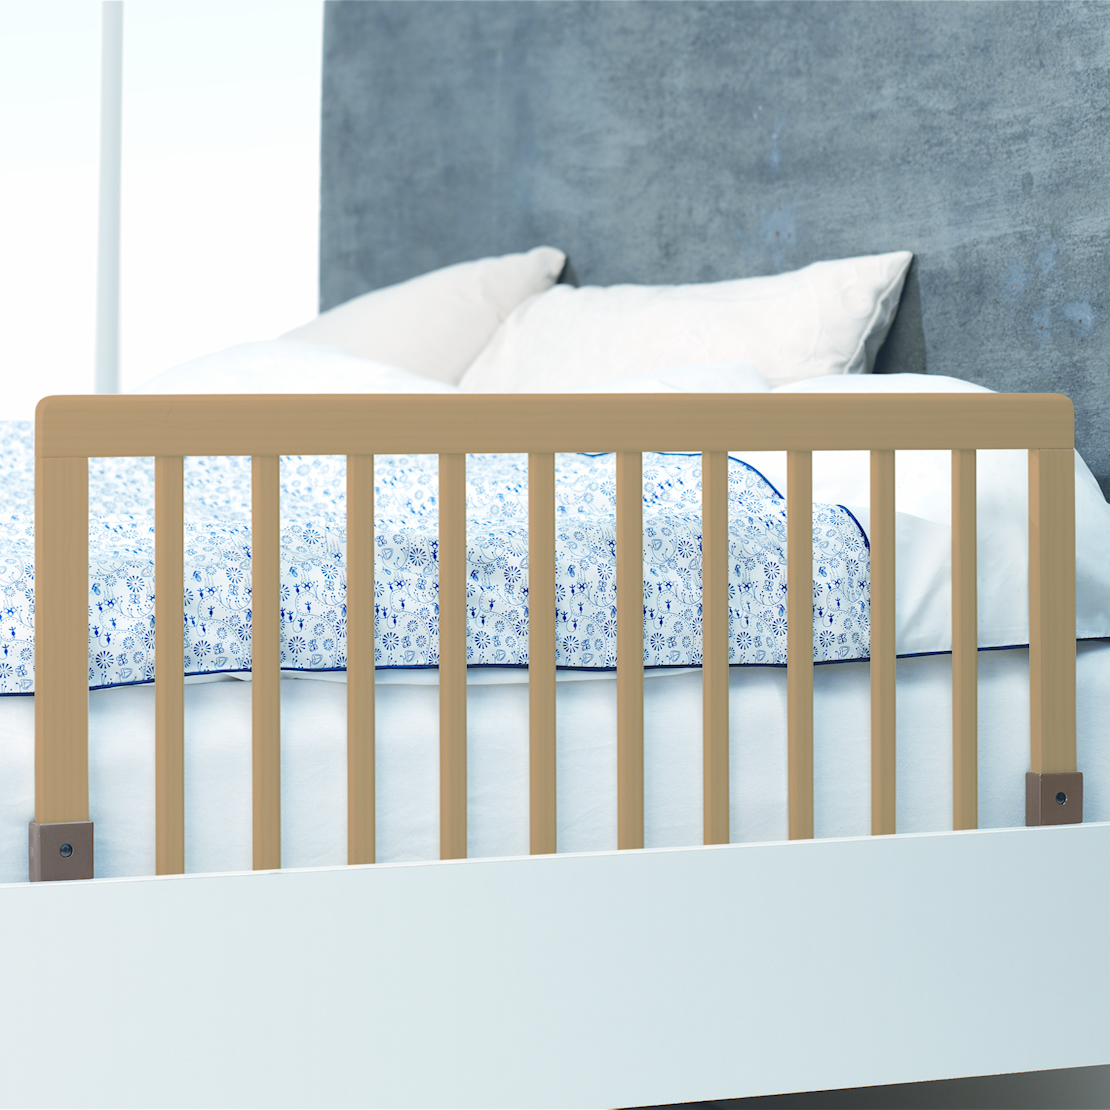 Very Impressive portraiture of   NATURAL SAFETY WOODEN BED RAIL GUARD TO FIT JUNIOR amp CHILDS BEDS with #334667 color and 1110x1110 pixels